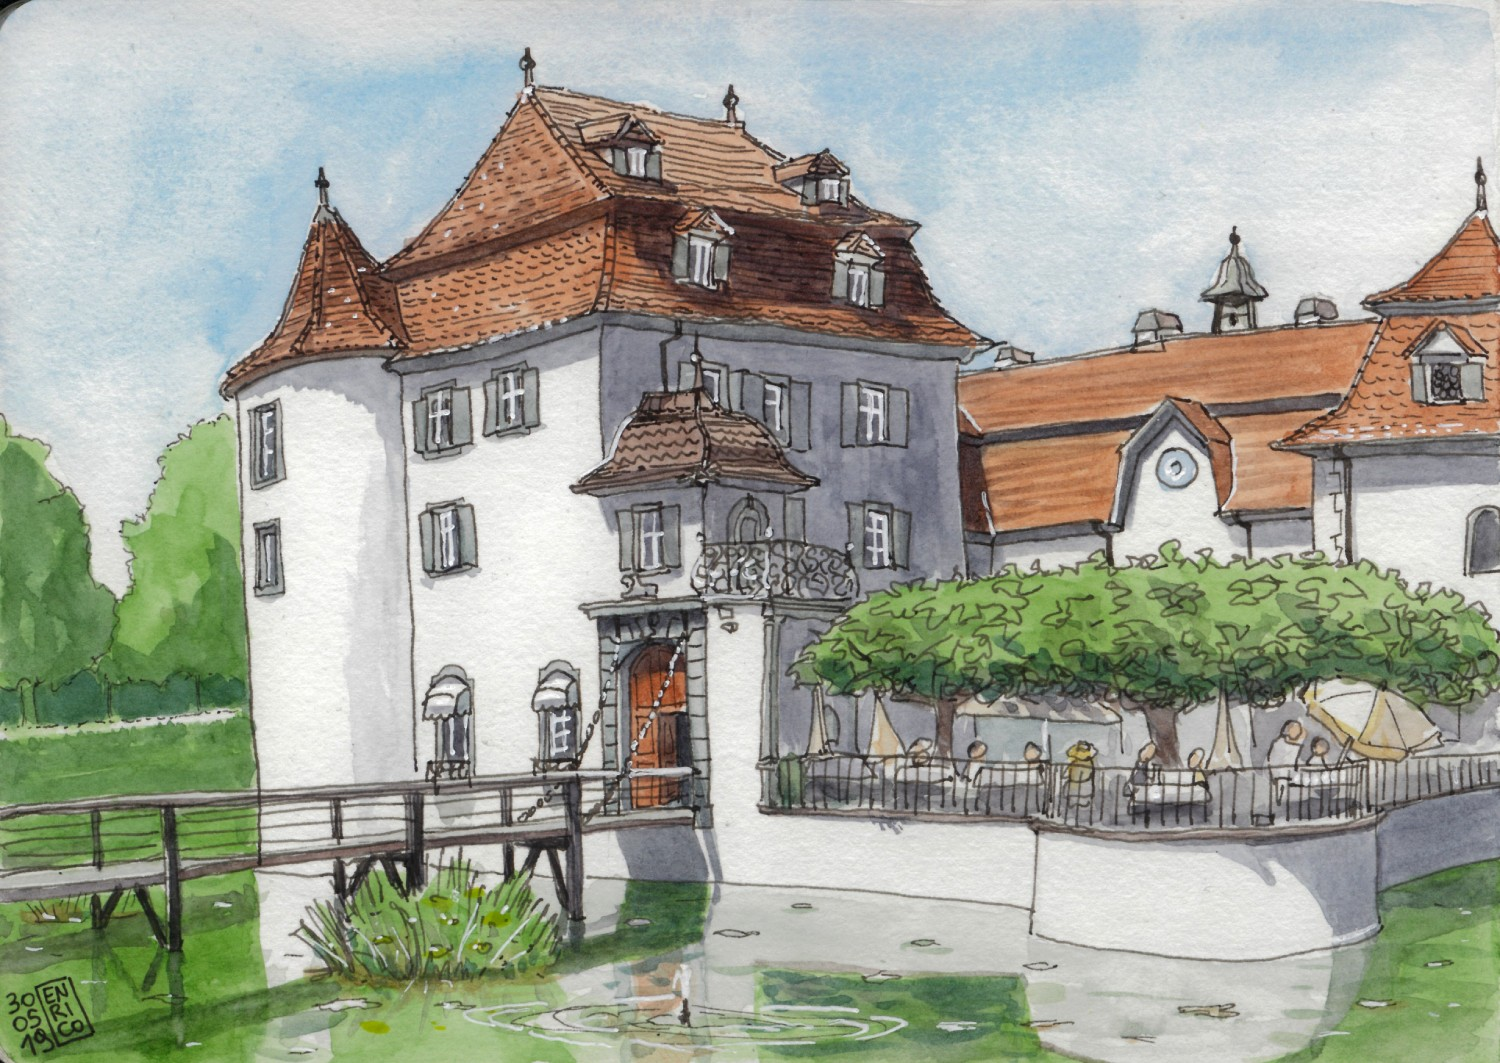 Bottmingen castle, just outside Basel. There is a fancy restaurant inside. We arrived by bike, had lunch in the park, and I sketched the castle before having a coffee on the terrace, under those trees.